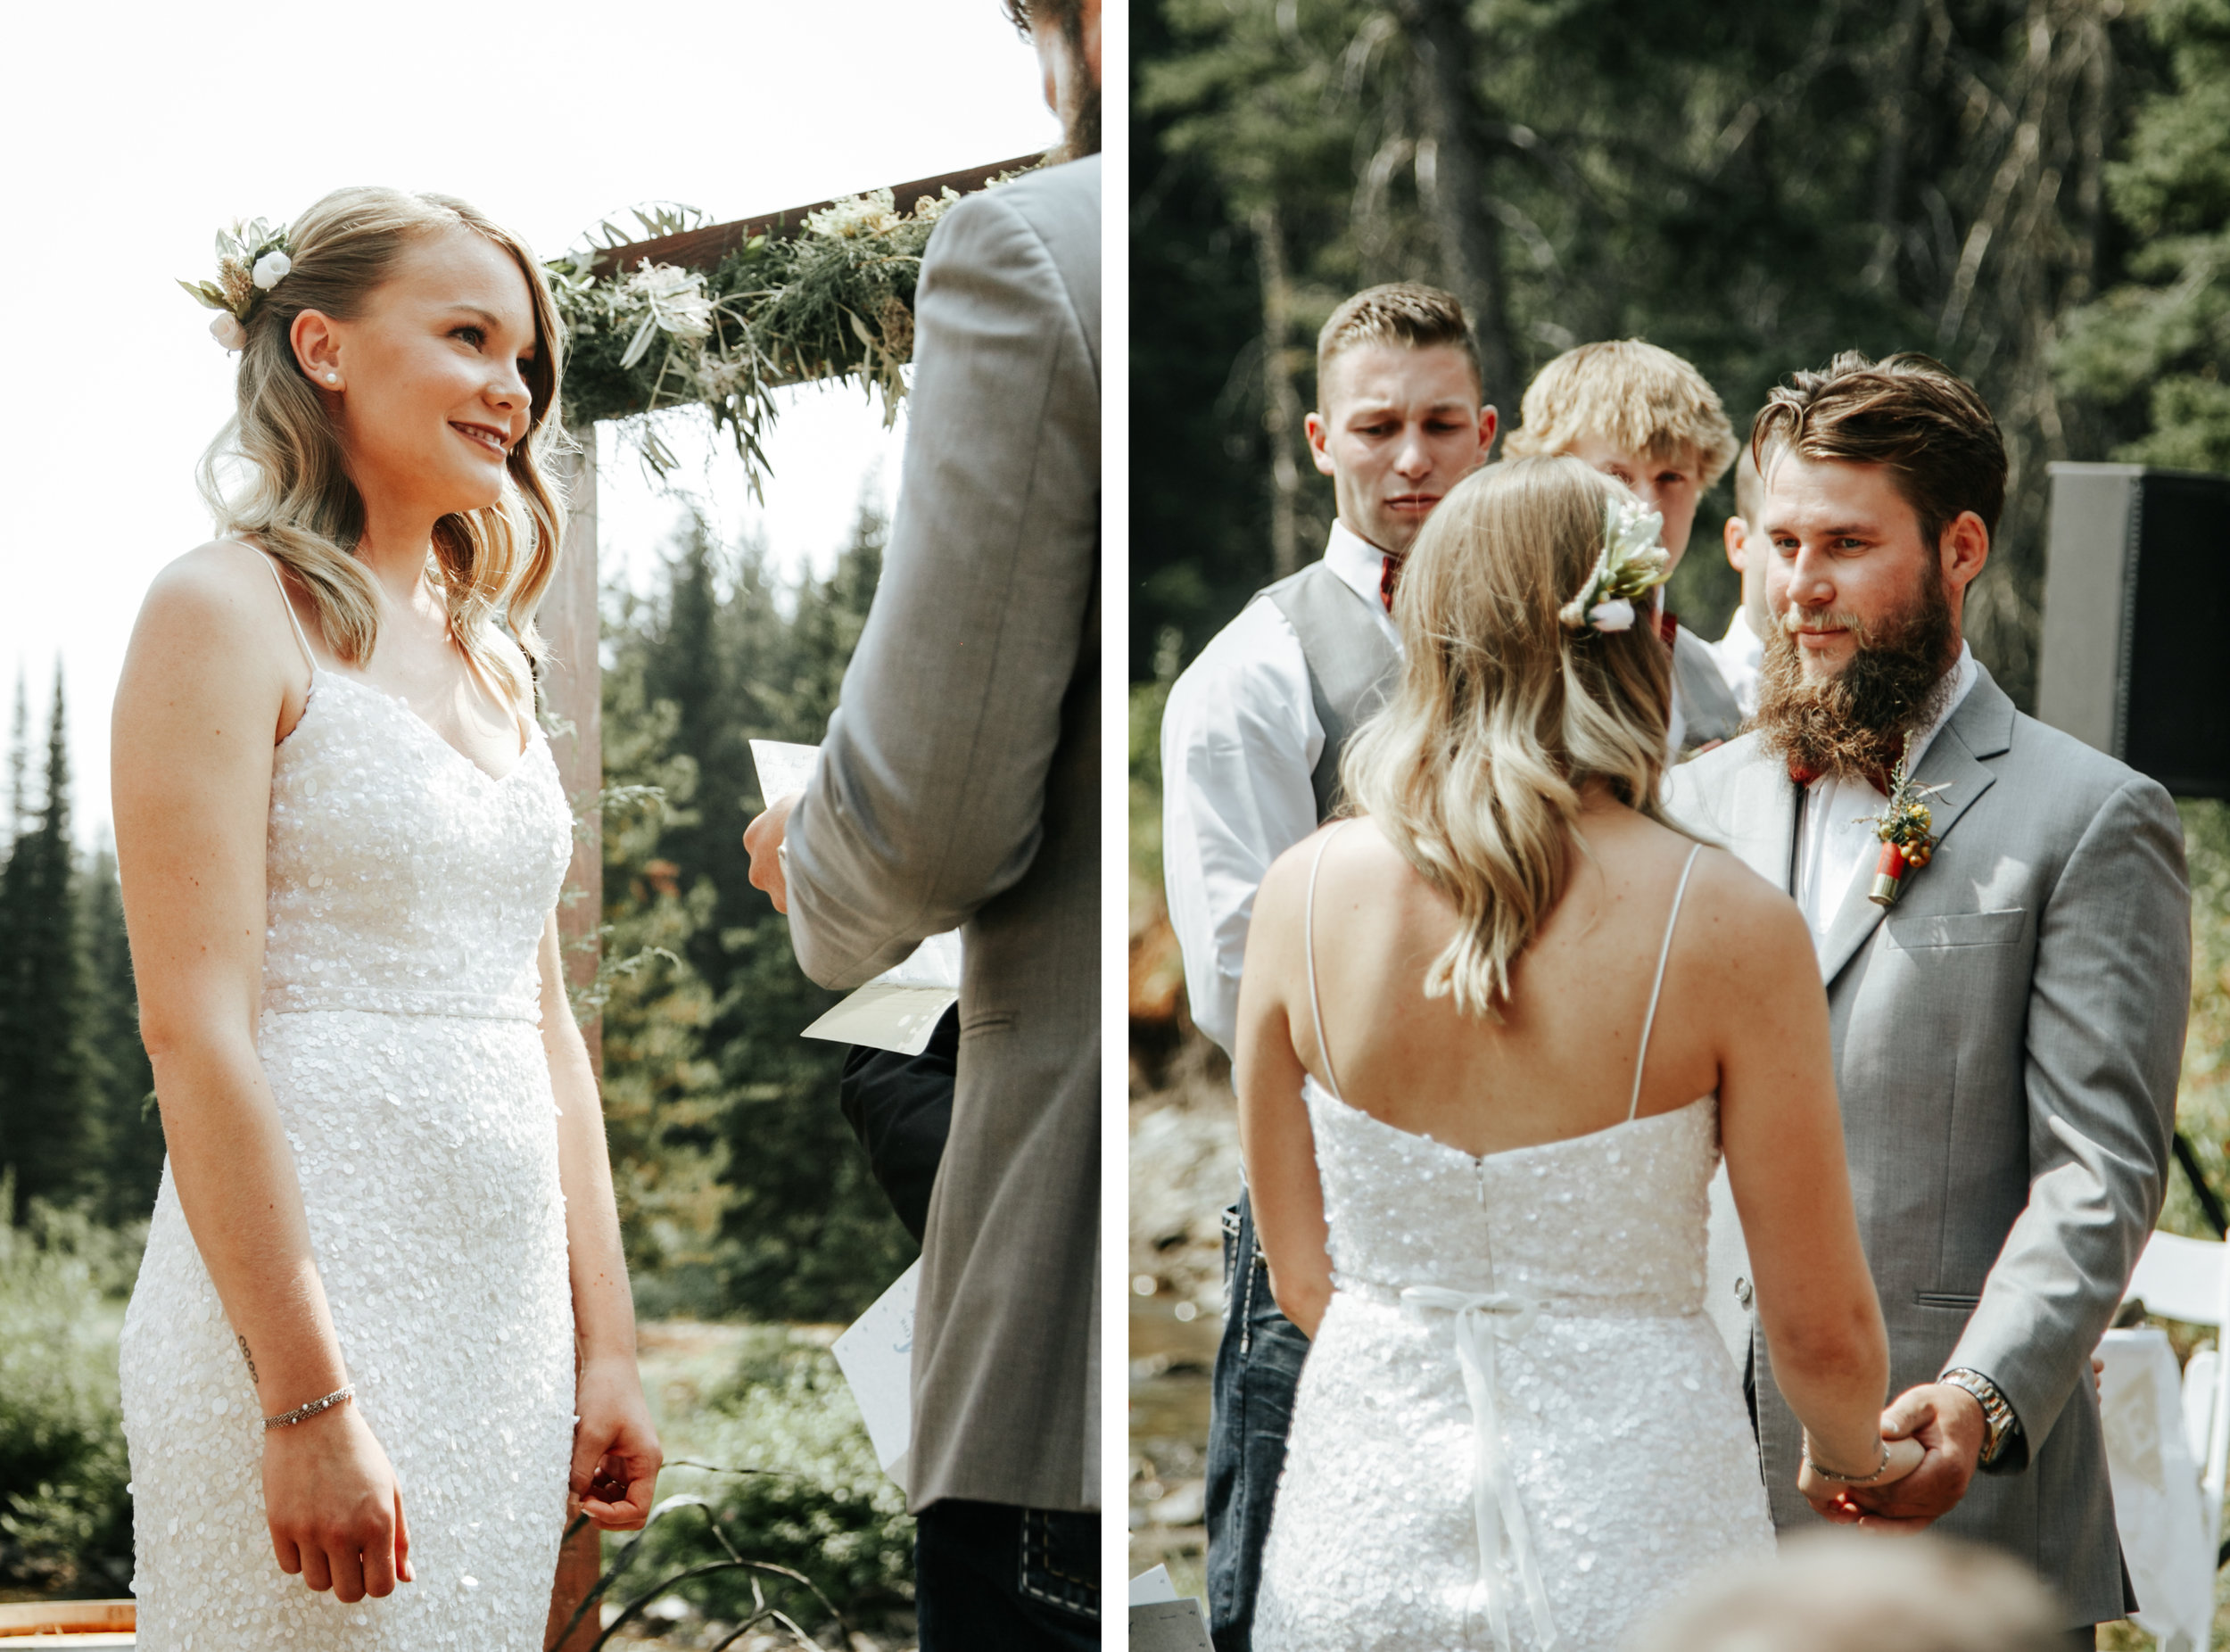 castle-mountain-wedding-photographer-love-and-be-loved-photography-lethbridge-pincher-creek-crowsnest-pass-yannick-rylee-photo-image-picture-69.jpg